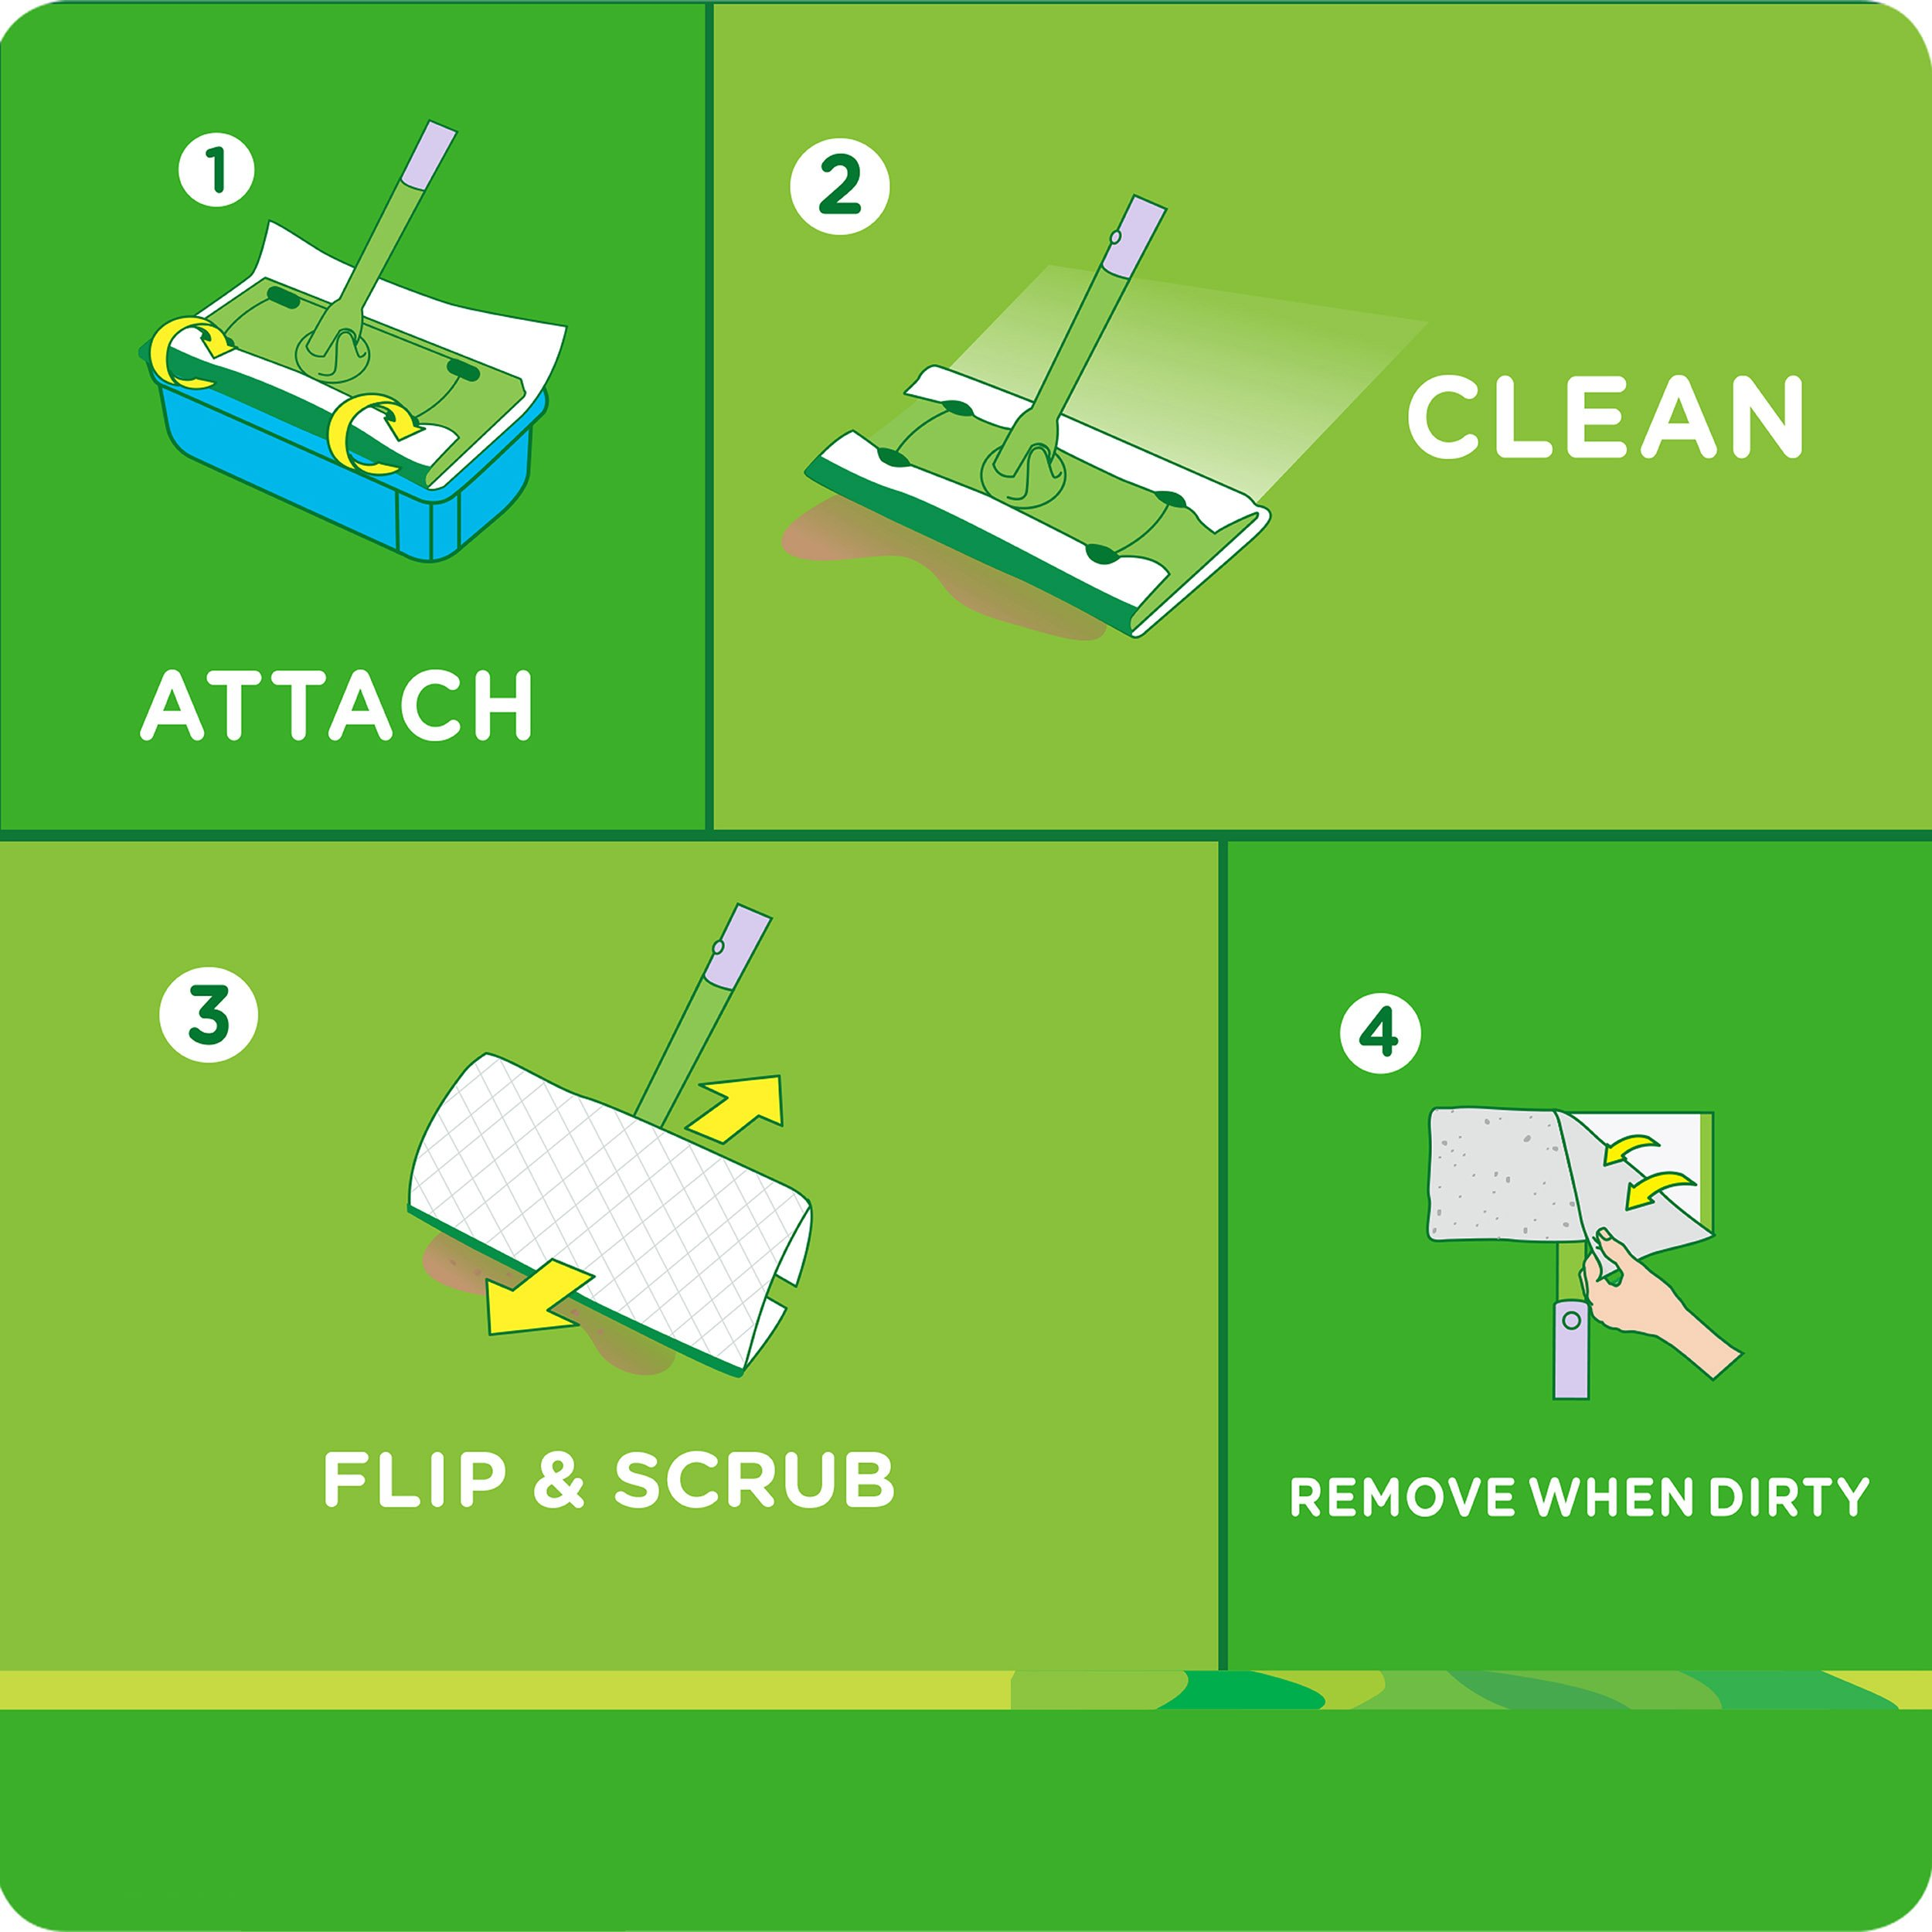 Swiffer Sweeper Wet Mop Refills for Floor Mopping and Cleaning, All Purpose Floor Cleaning Product, Lavender Vanilla and Comfort Scent, 36 Count by Swiffer (Image #3)